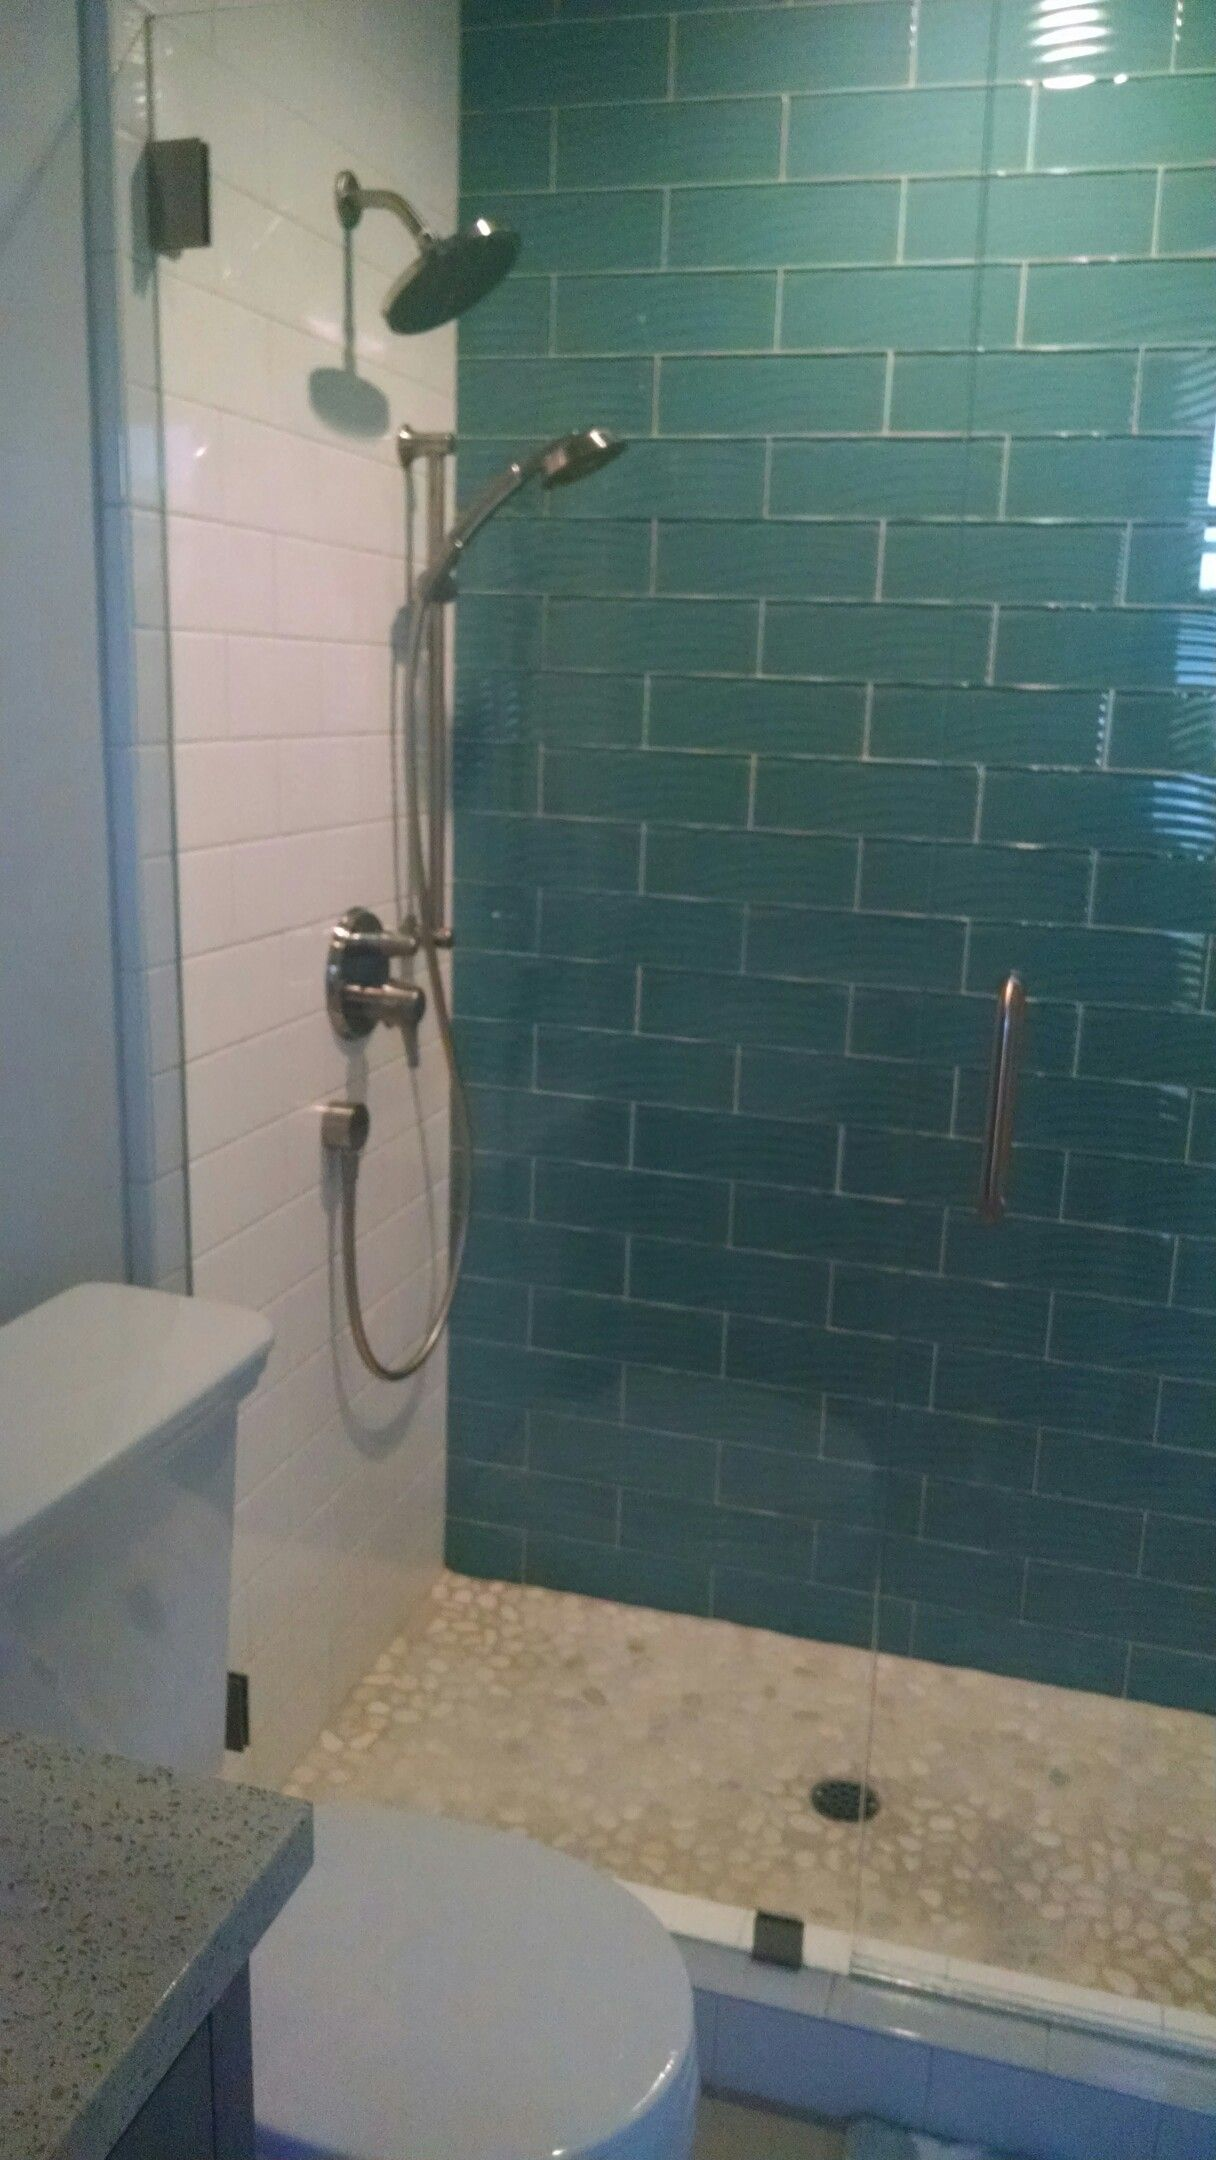 Shower HansGrohe Shower Fixtures X White Subway Tiles By - 4x6 wall tile